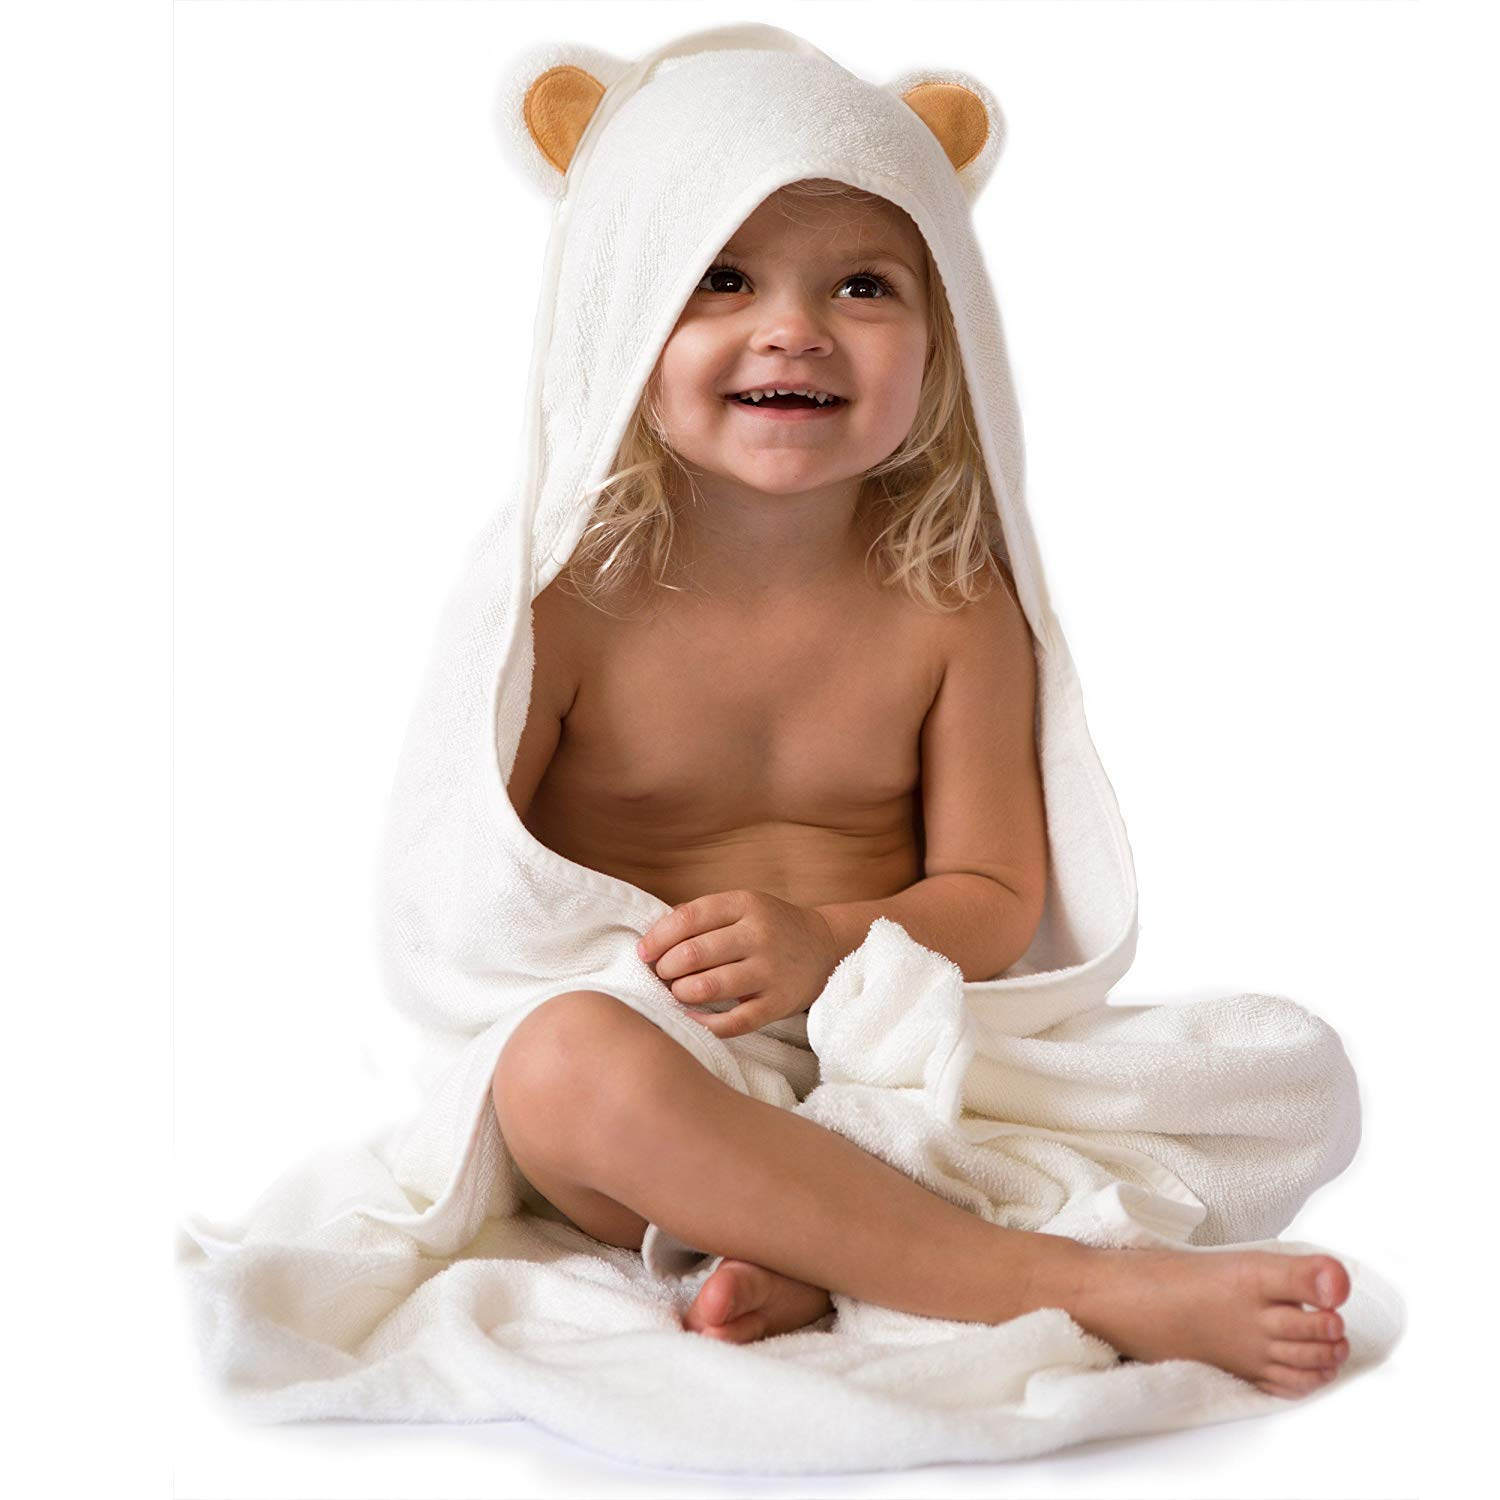 Premium Hooded Baby Towels - Organic Bamboo toddler towel - 3x Thick & Soft Baby Bath Towels with Hood for Boy and Girl - Super Absorbent and Hypoallergenic ...